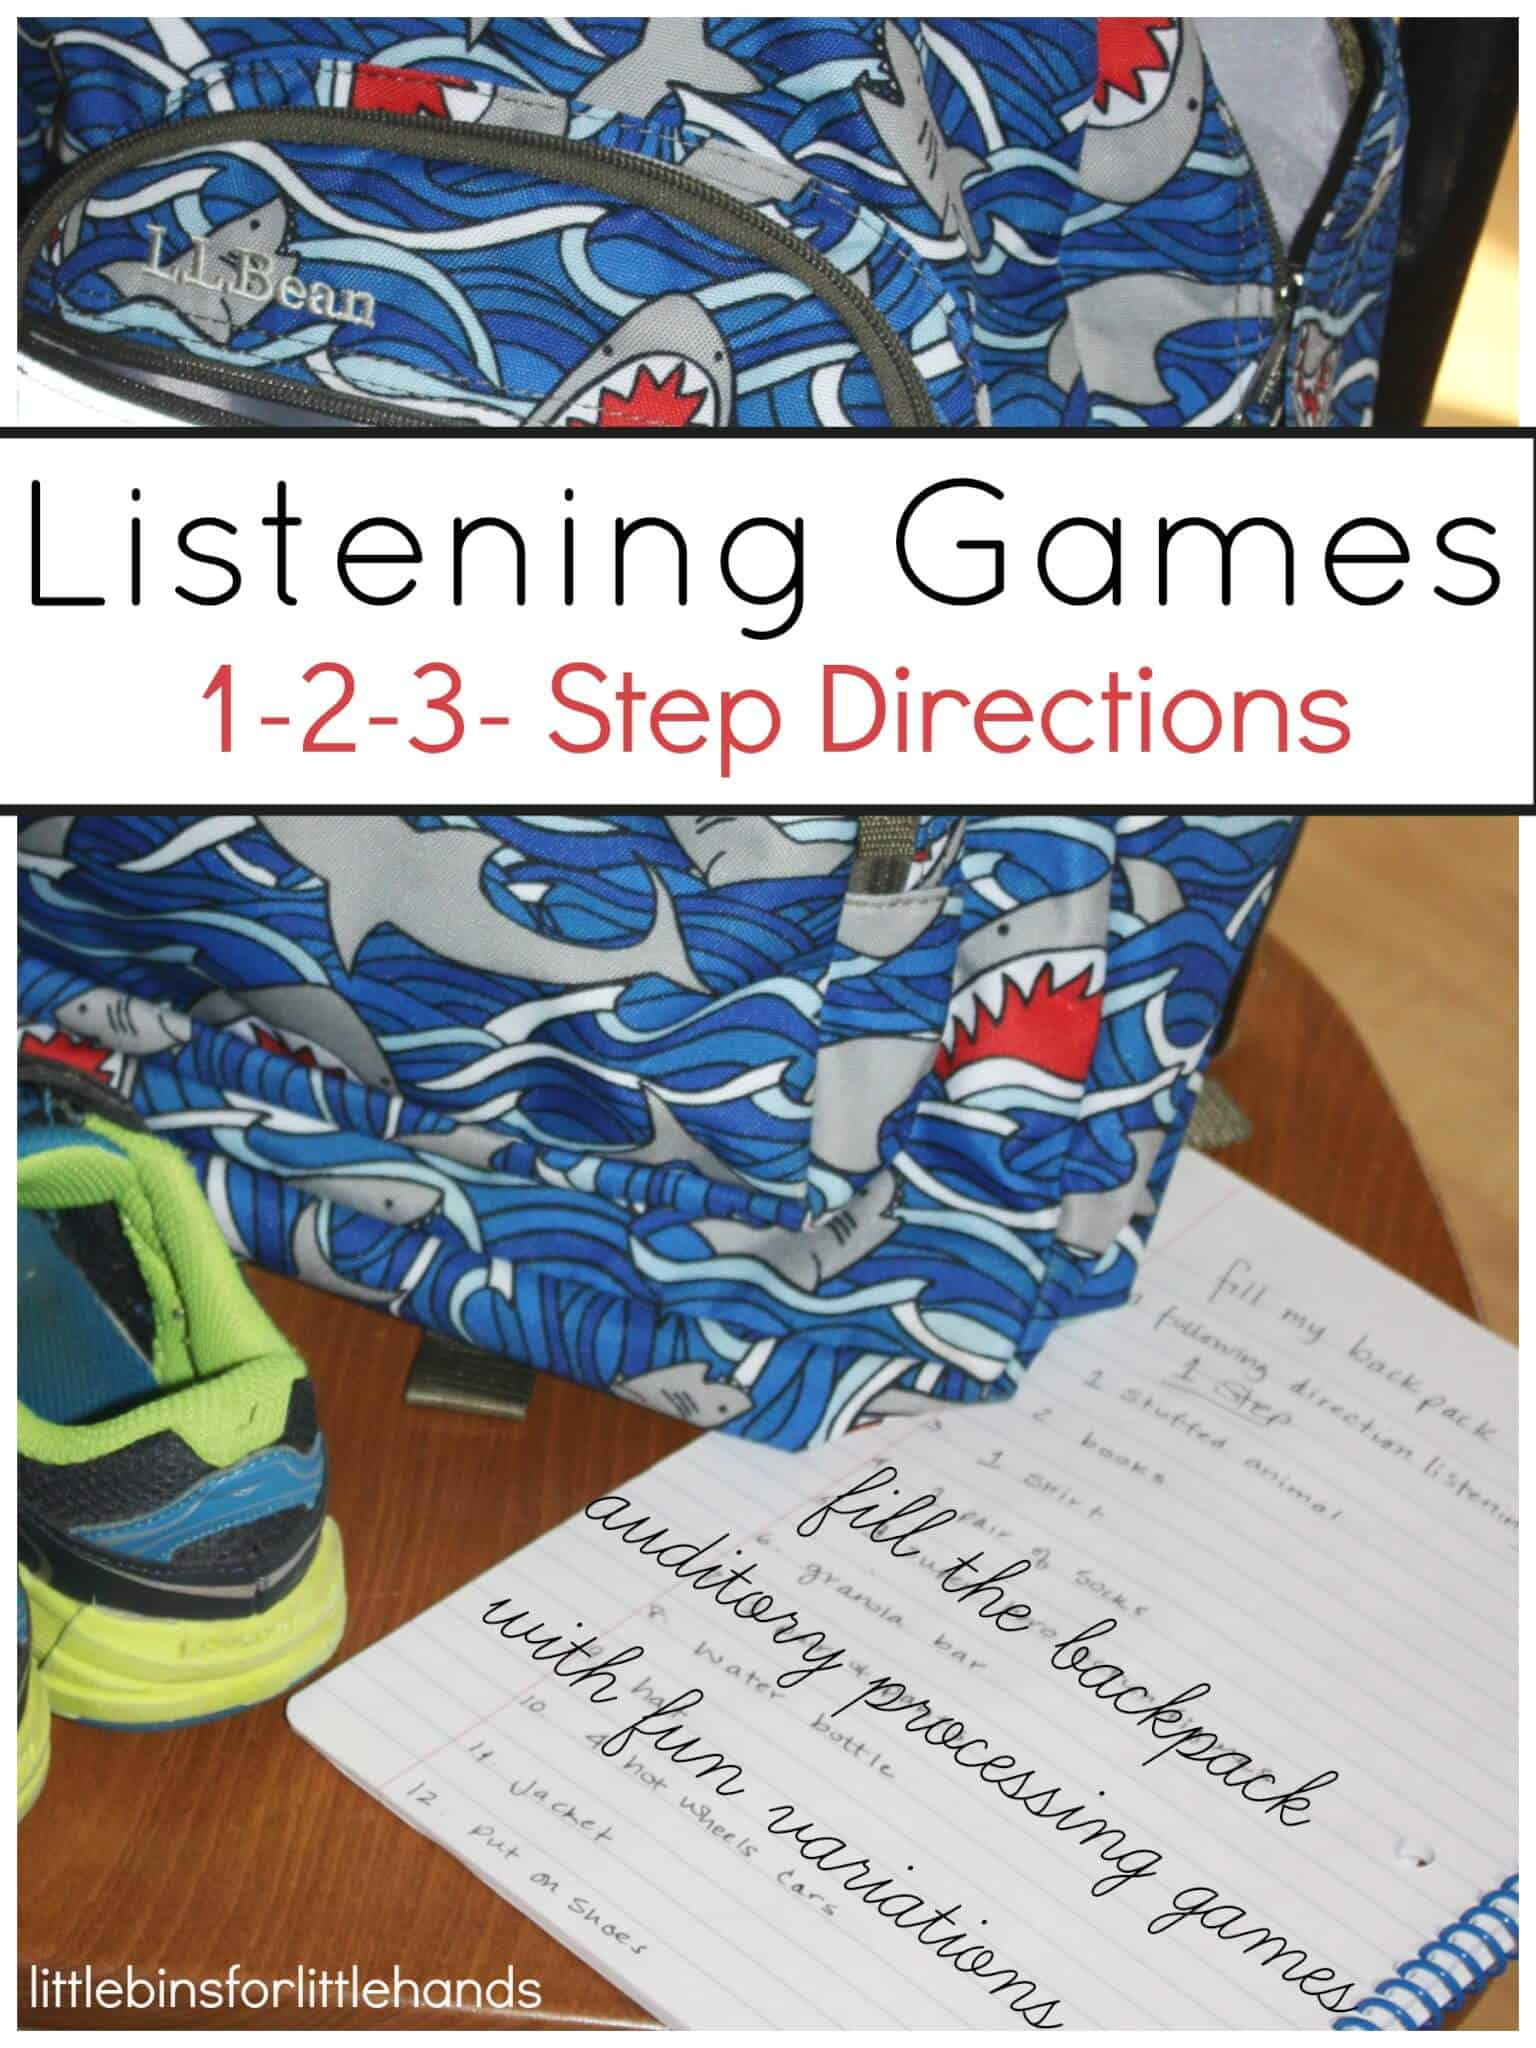 Listening Games For Auditory Processing Skills